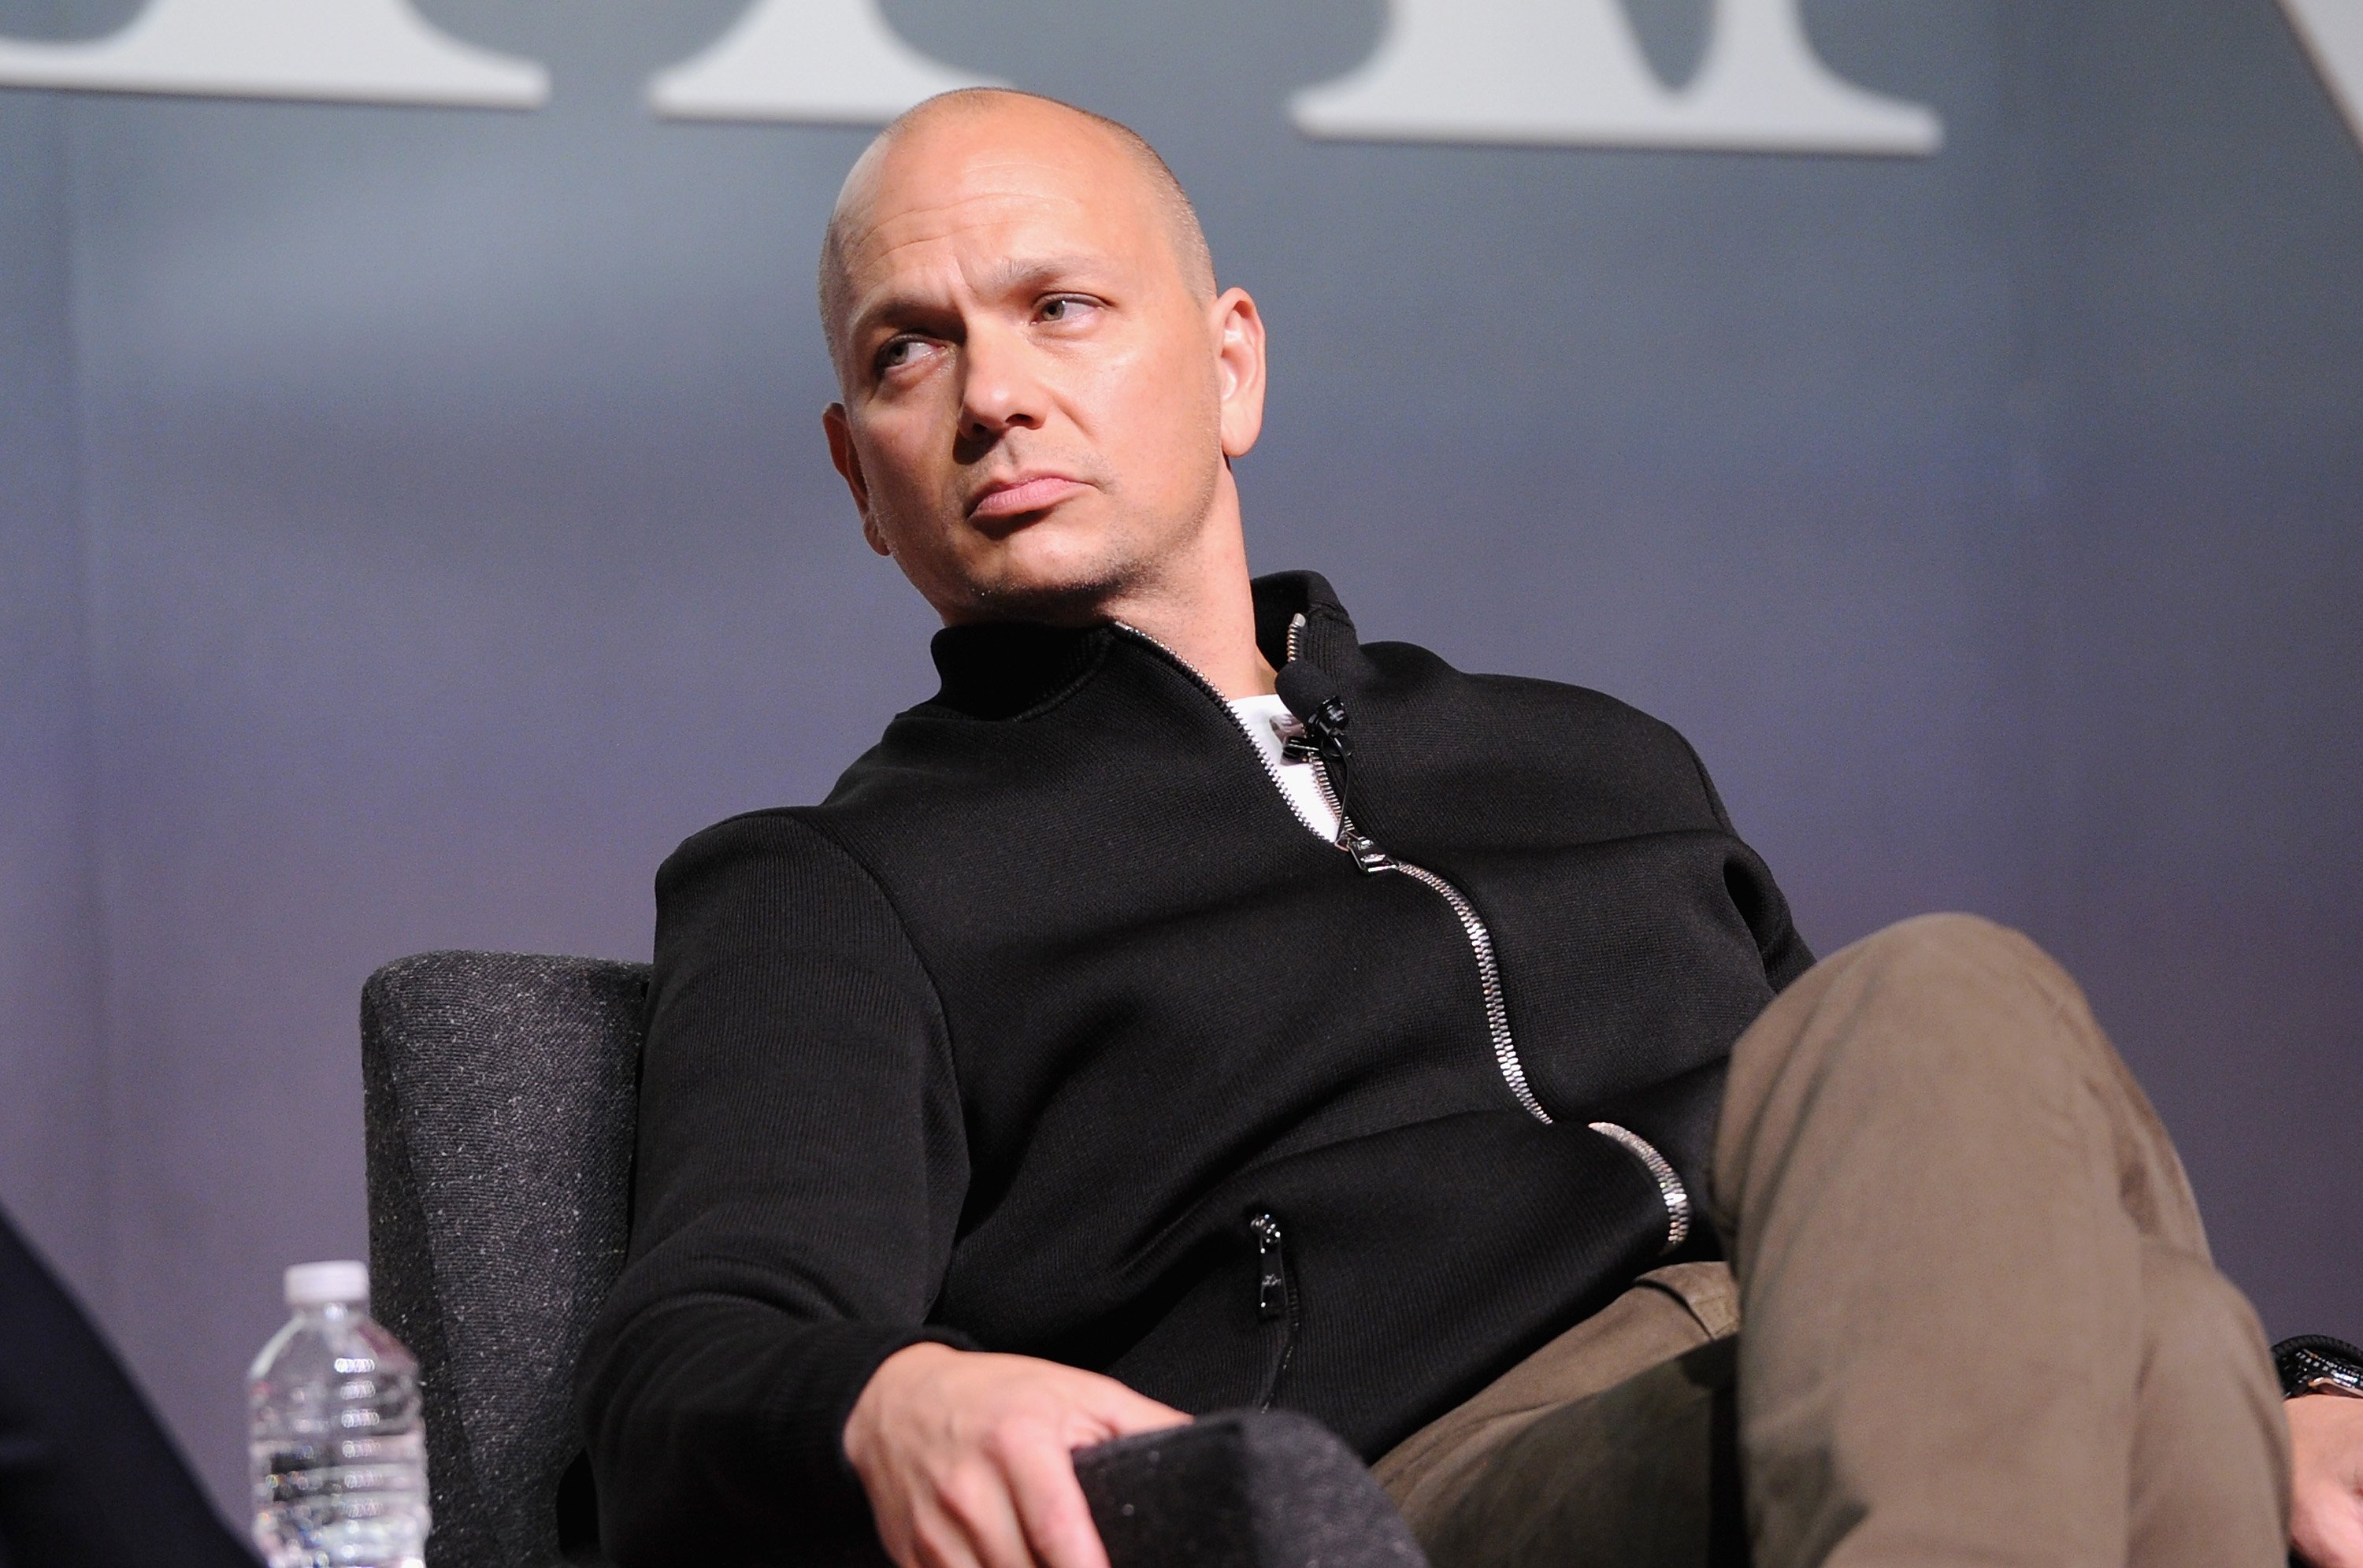 Designer Tony Fadell speaks onstage  The Power Of Design With Tony Fadell And Jared Leto  at The Fast Company Innovation Festival on November 10, 2015 in New York City.